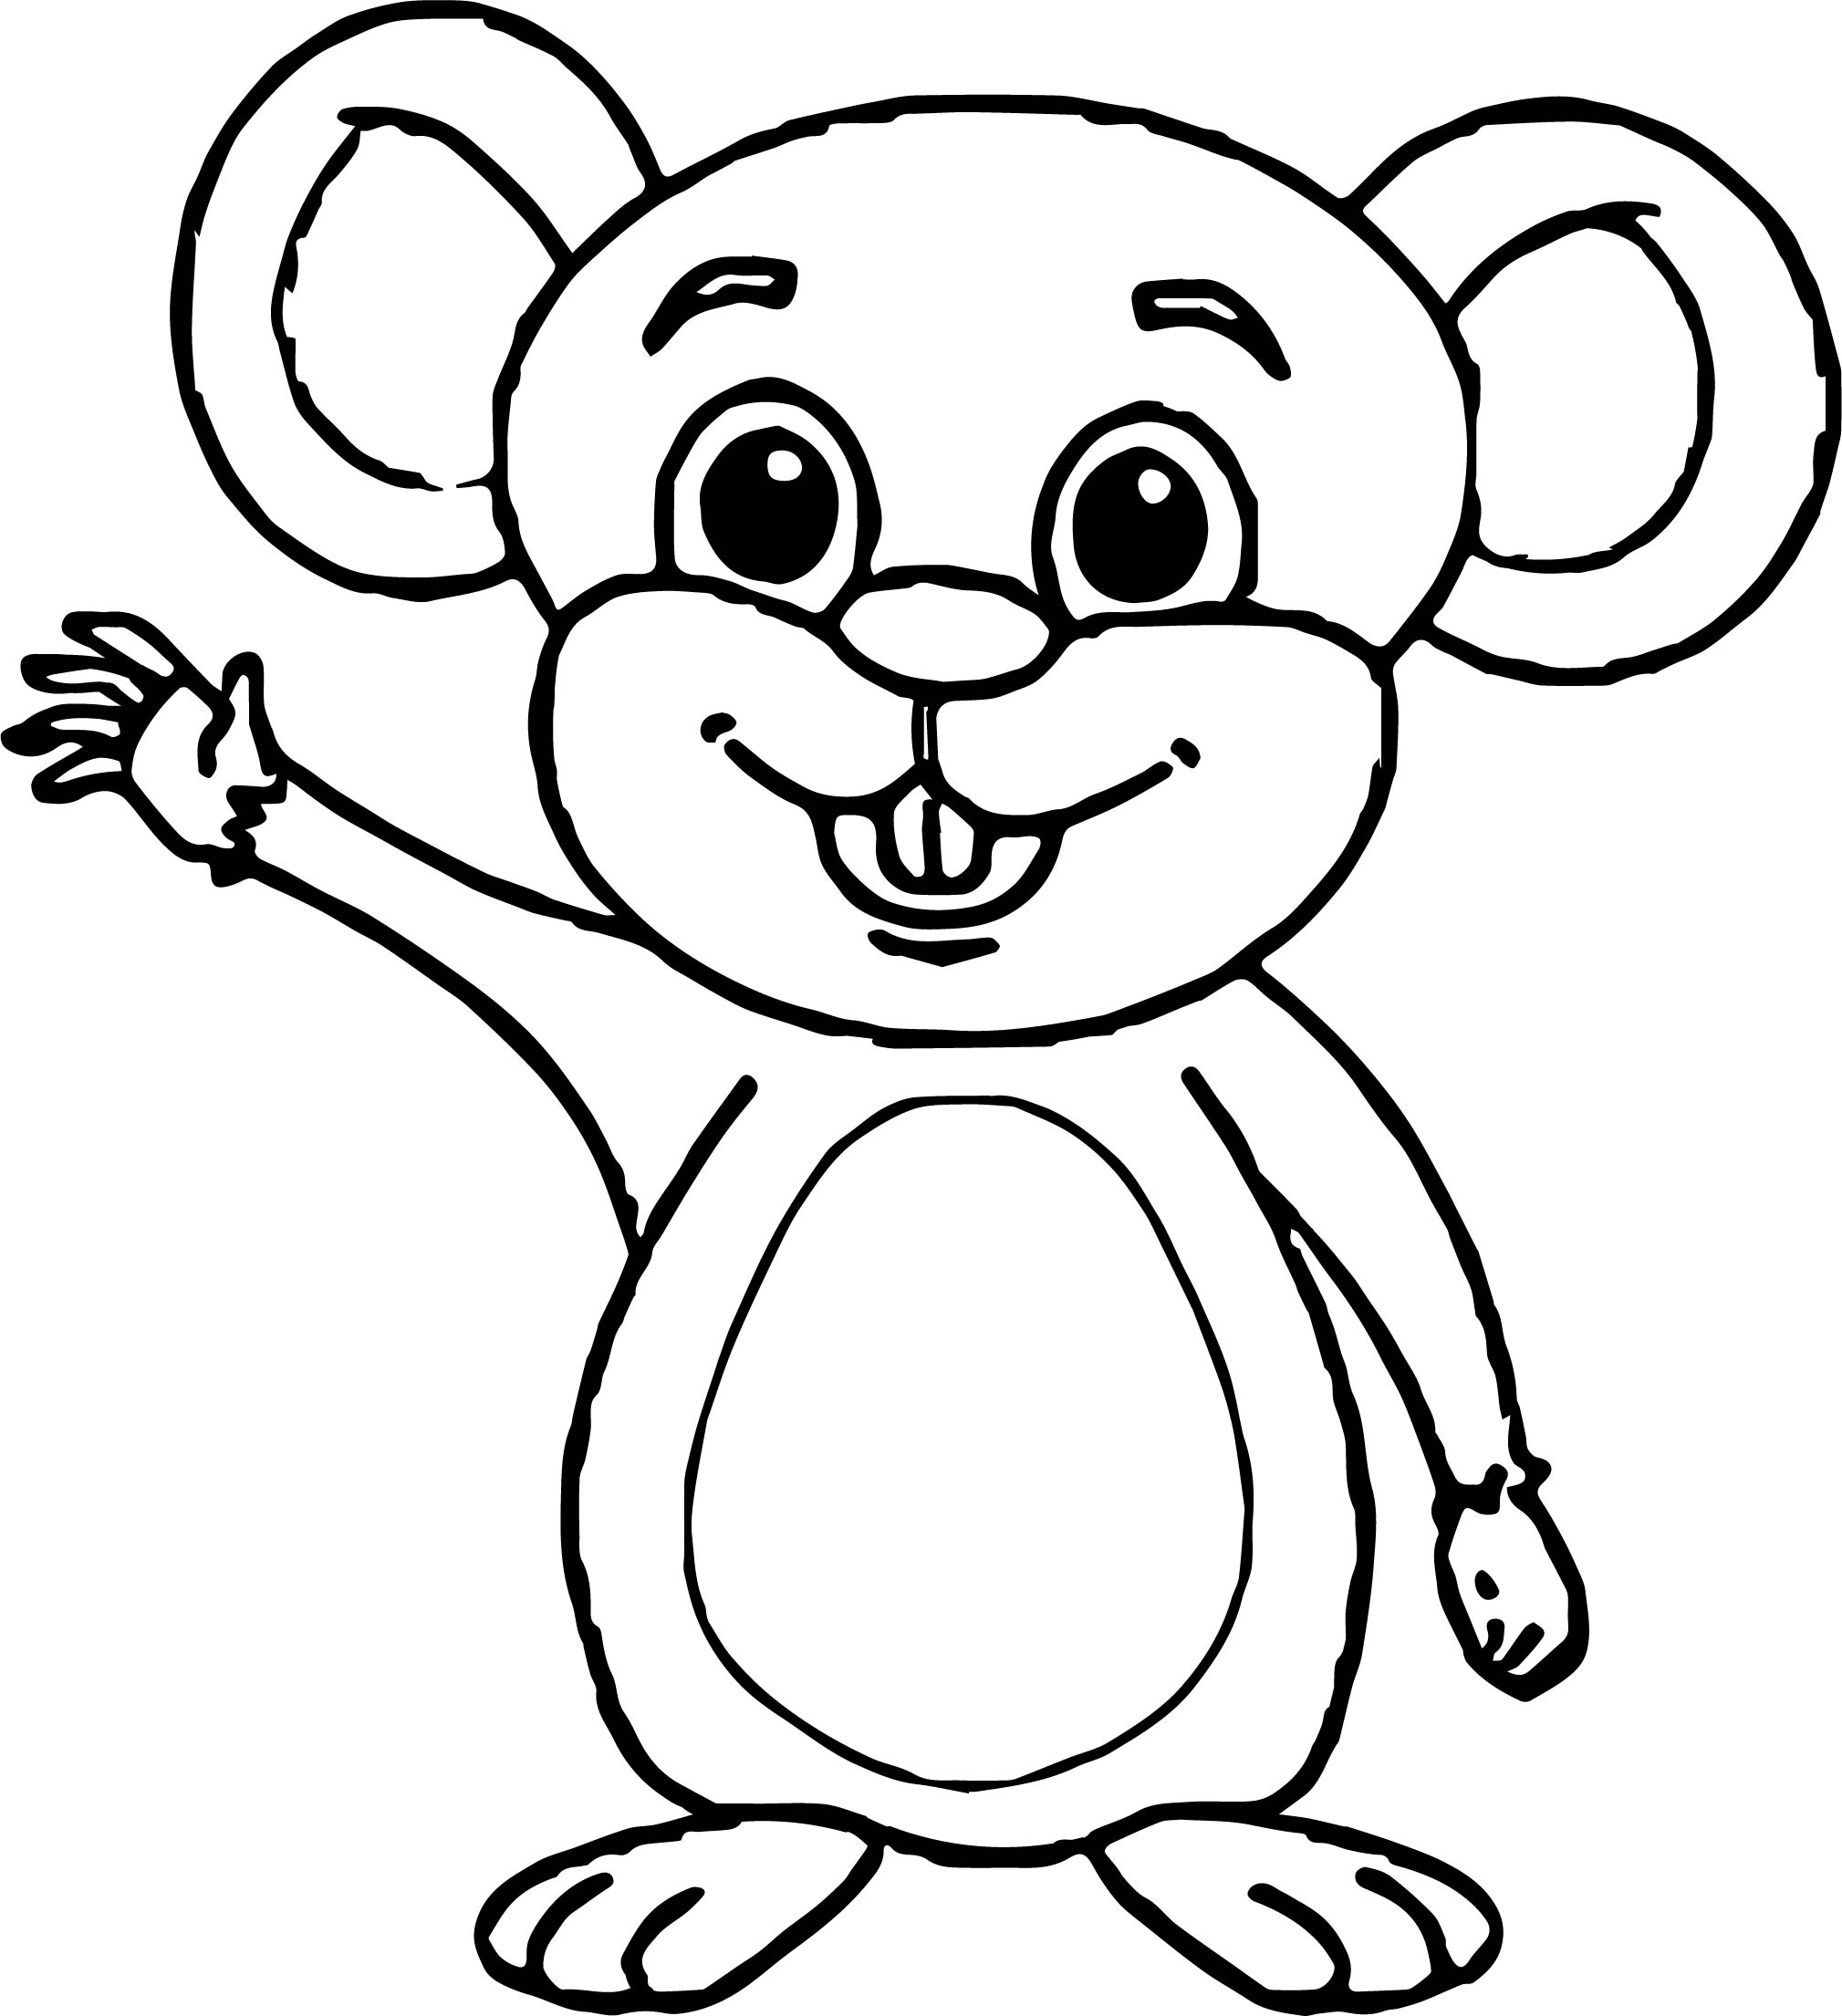 Baby Mouse Waving Cartoon Style Coloring Page